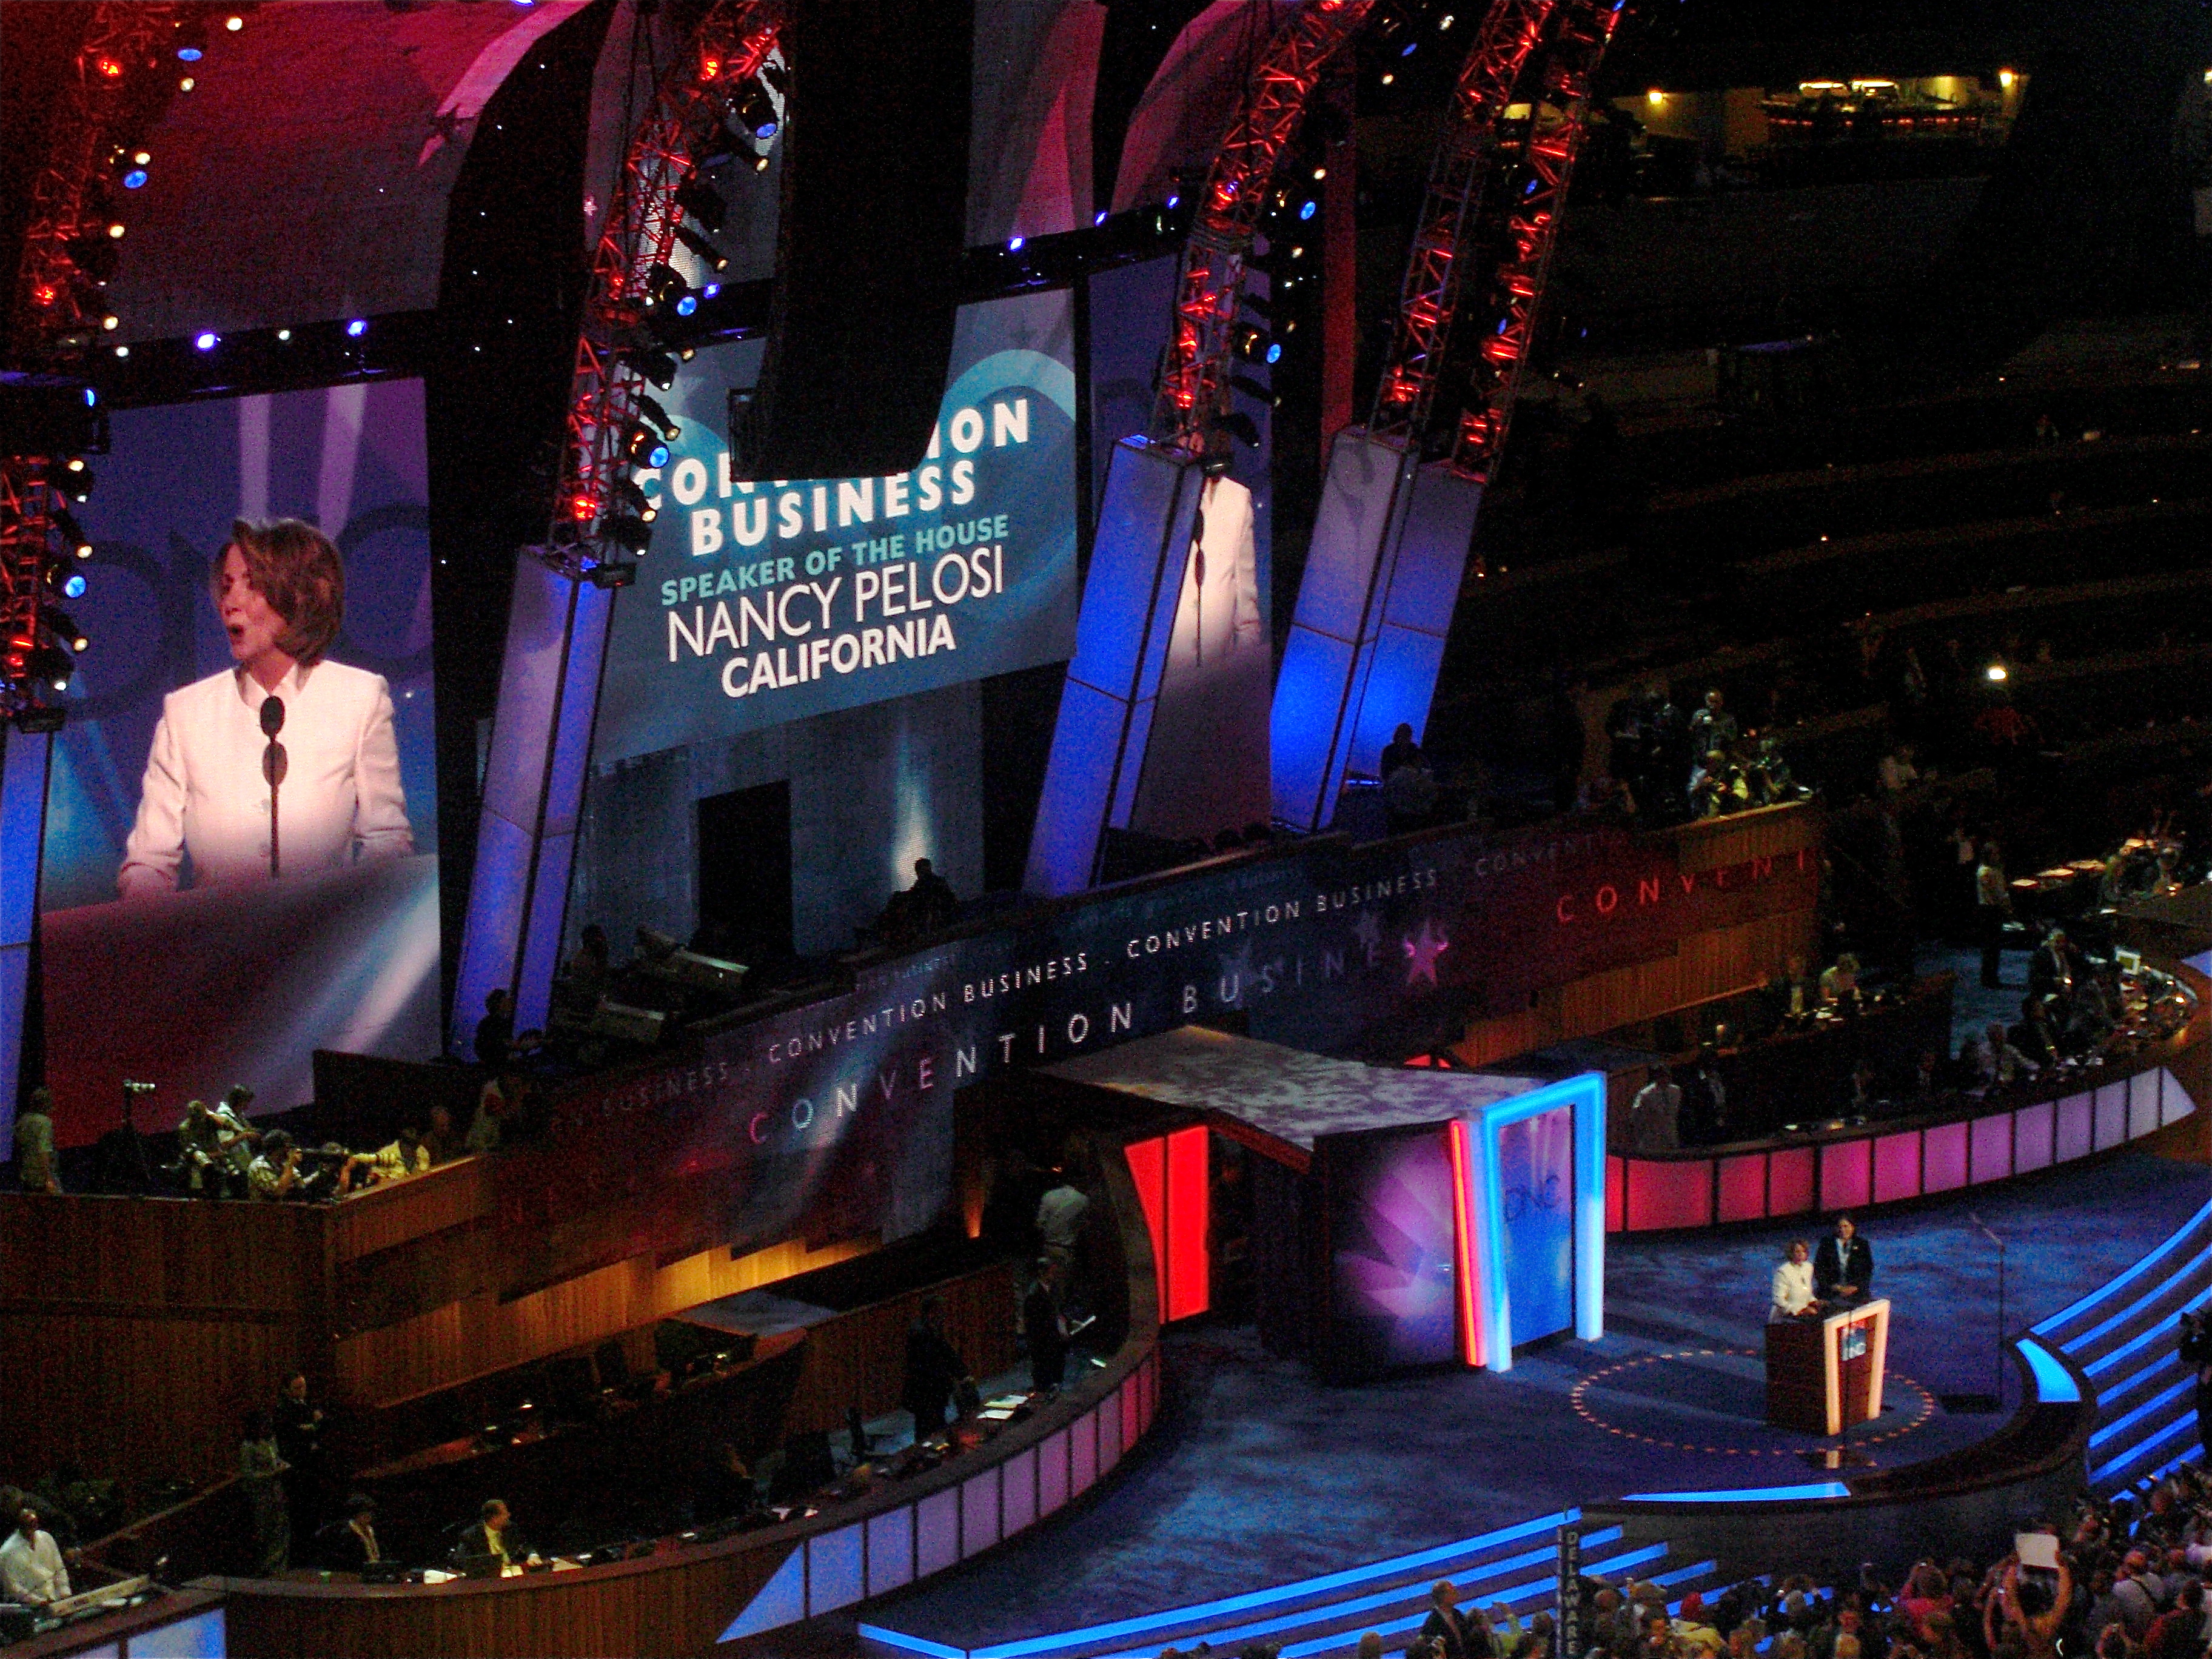 Pelosi conducts convention business during the first day of the 2008 Democratic National Convention in Denver, Colorado.